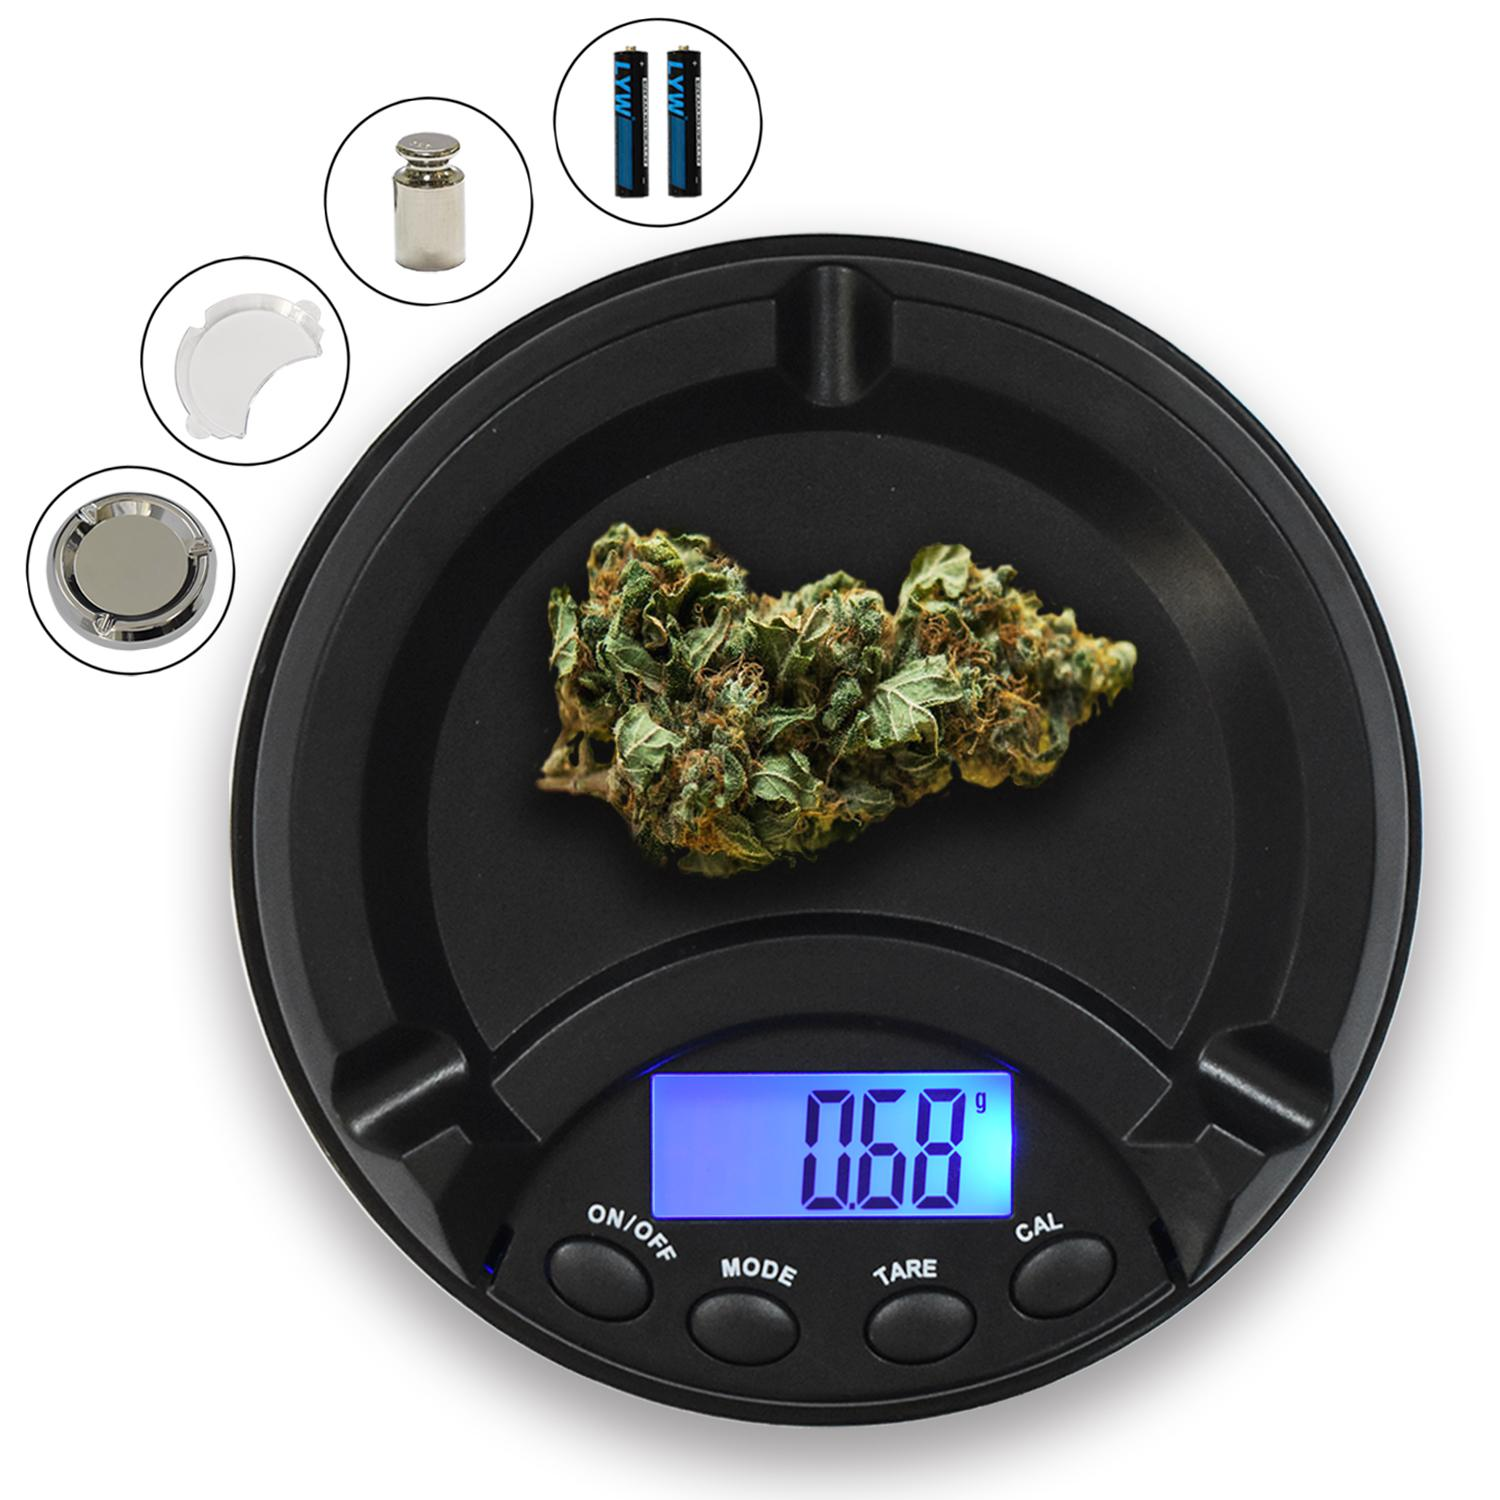 2020 Digital Pocket Scale Ashtray Scale With 50g ...